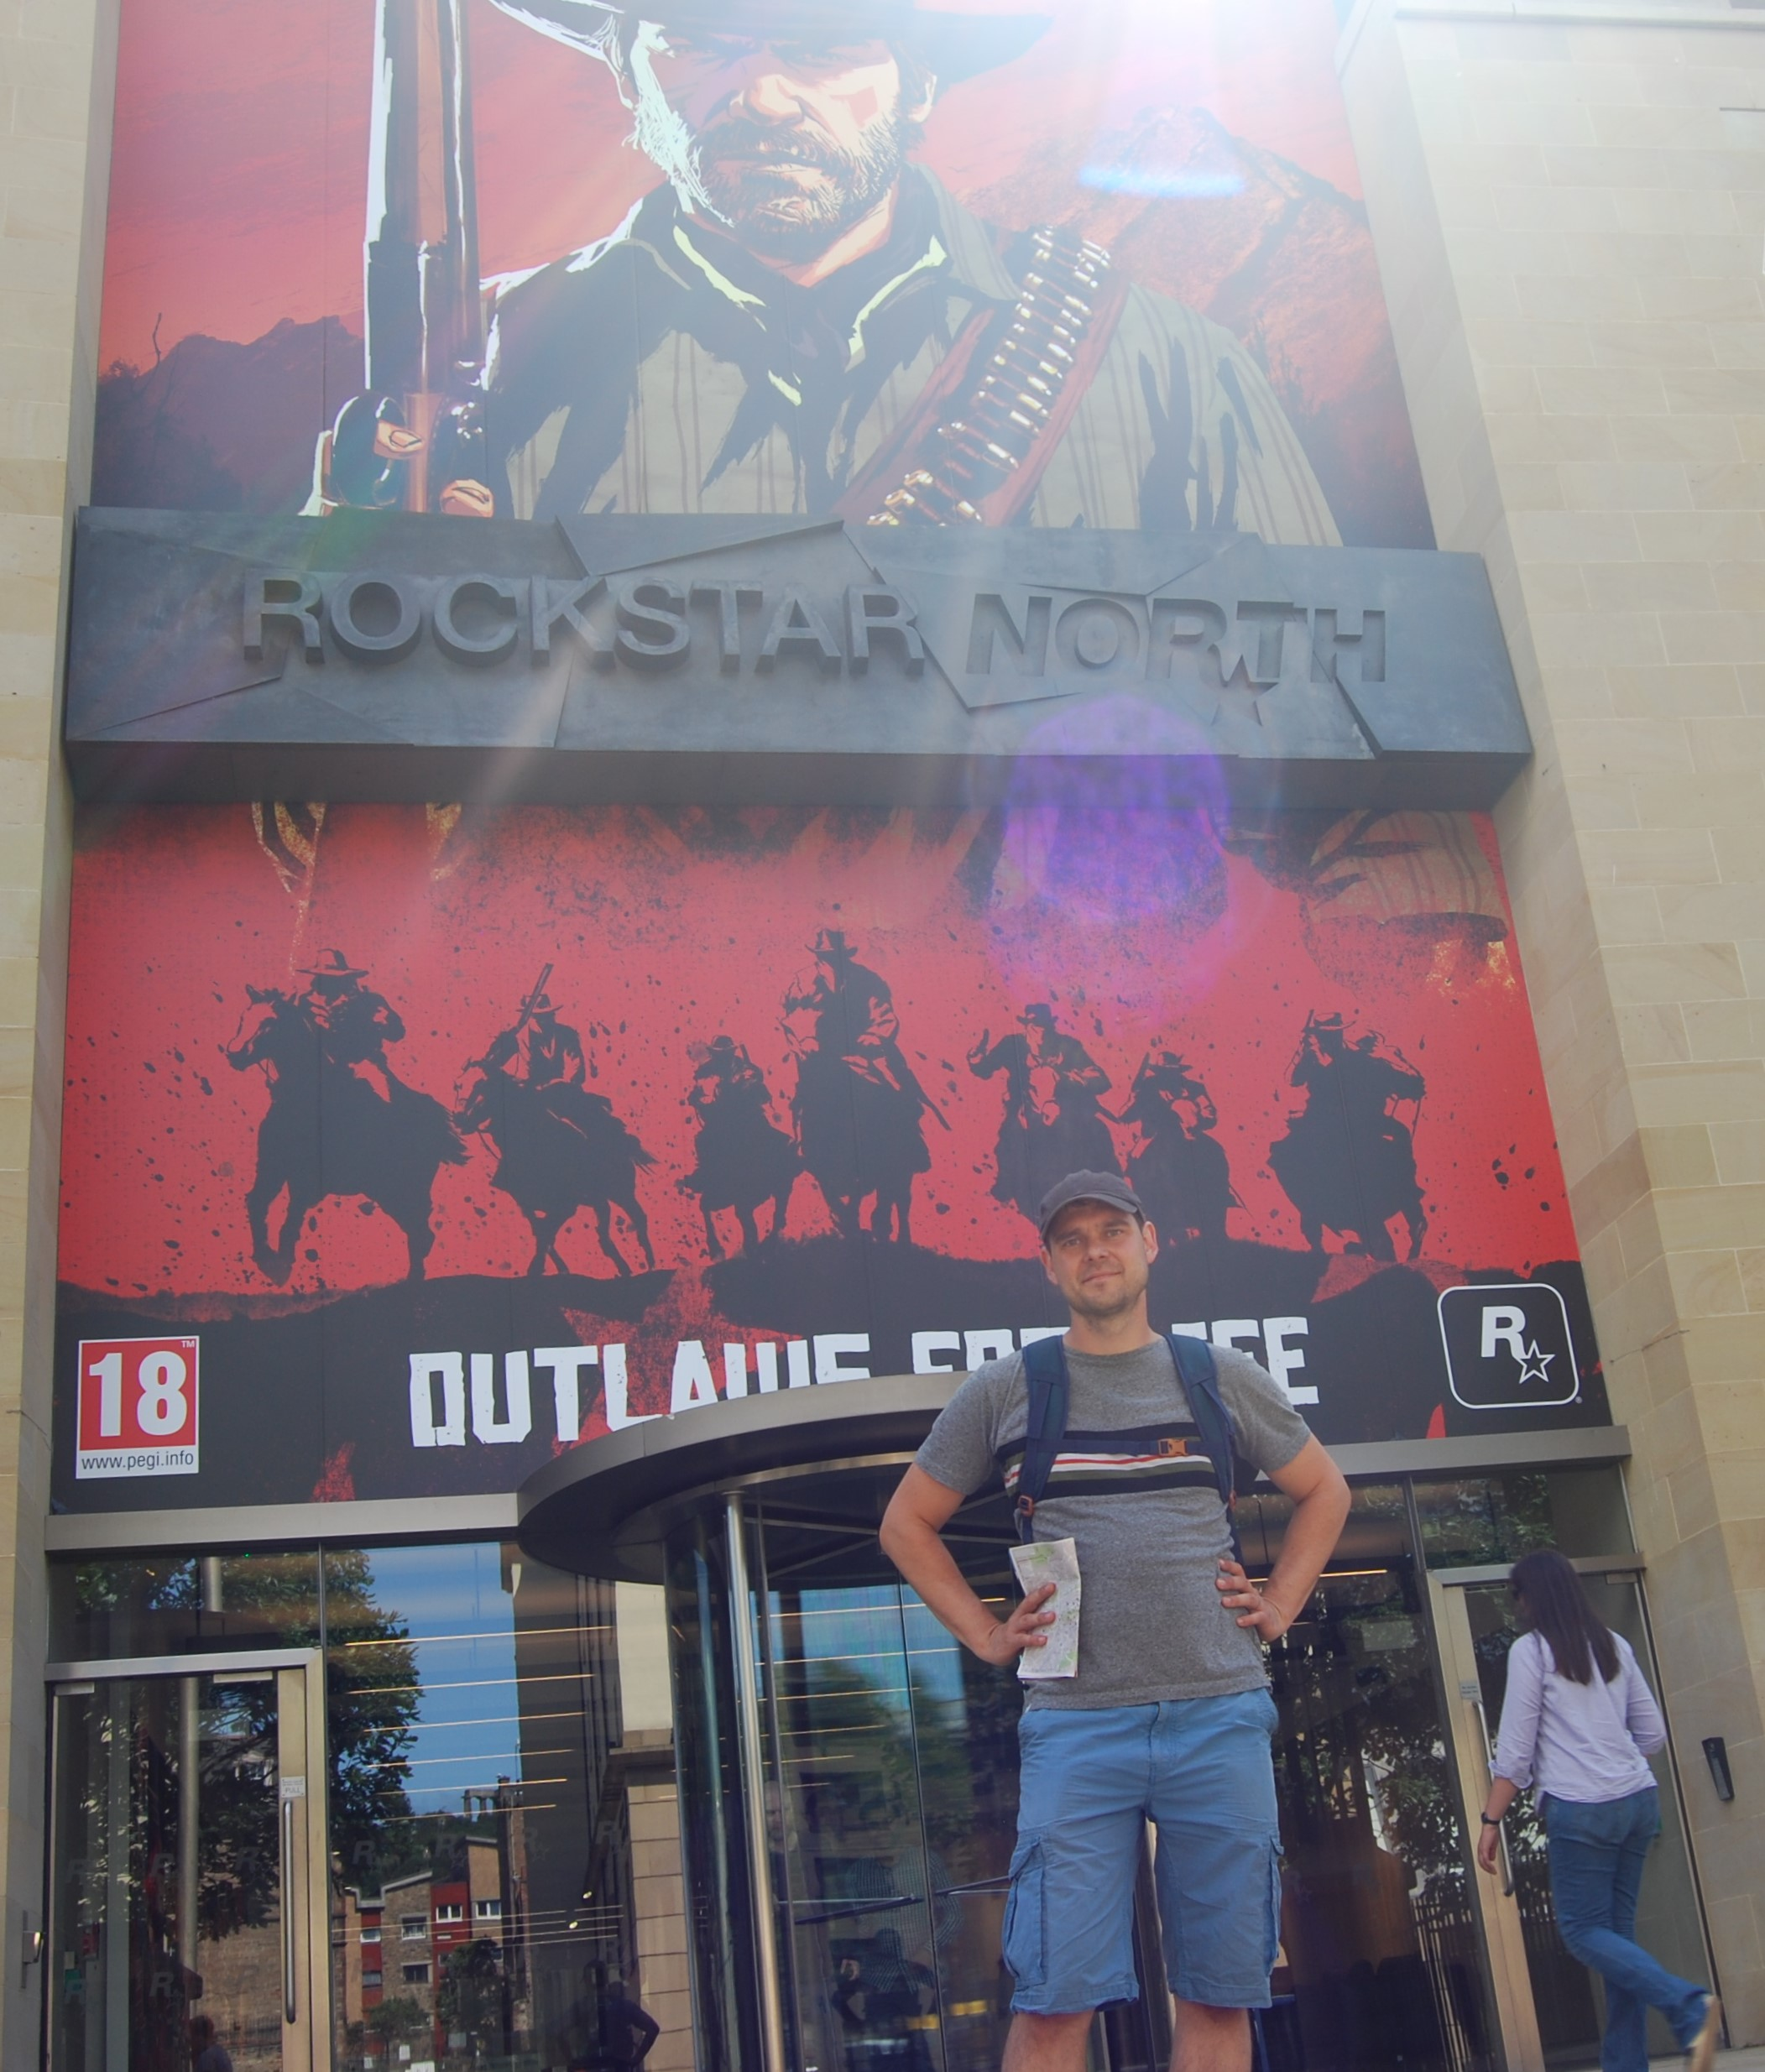 Rockstar North office